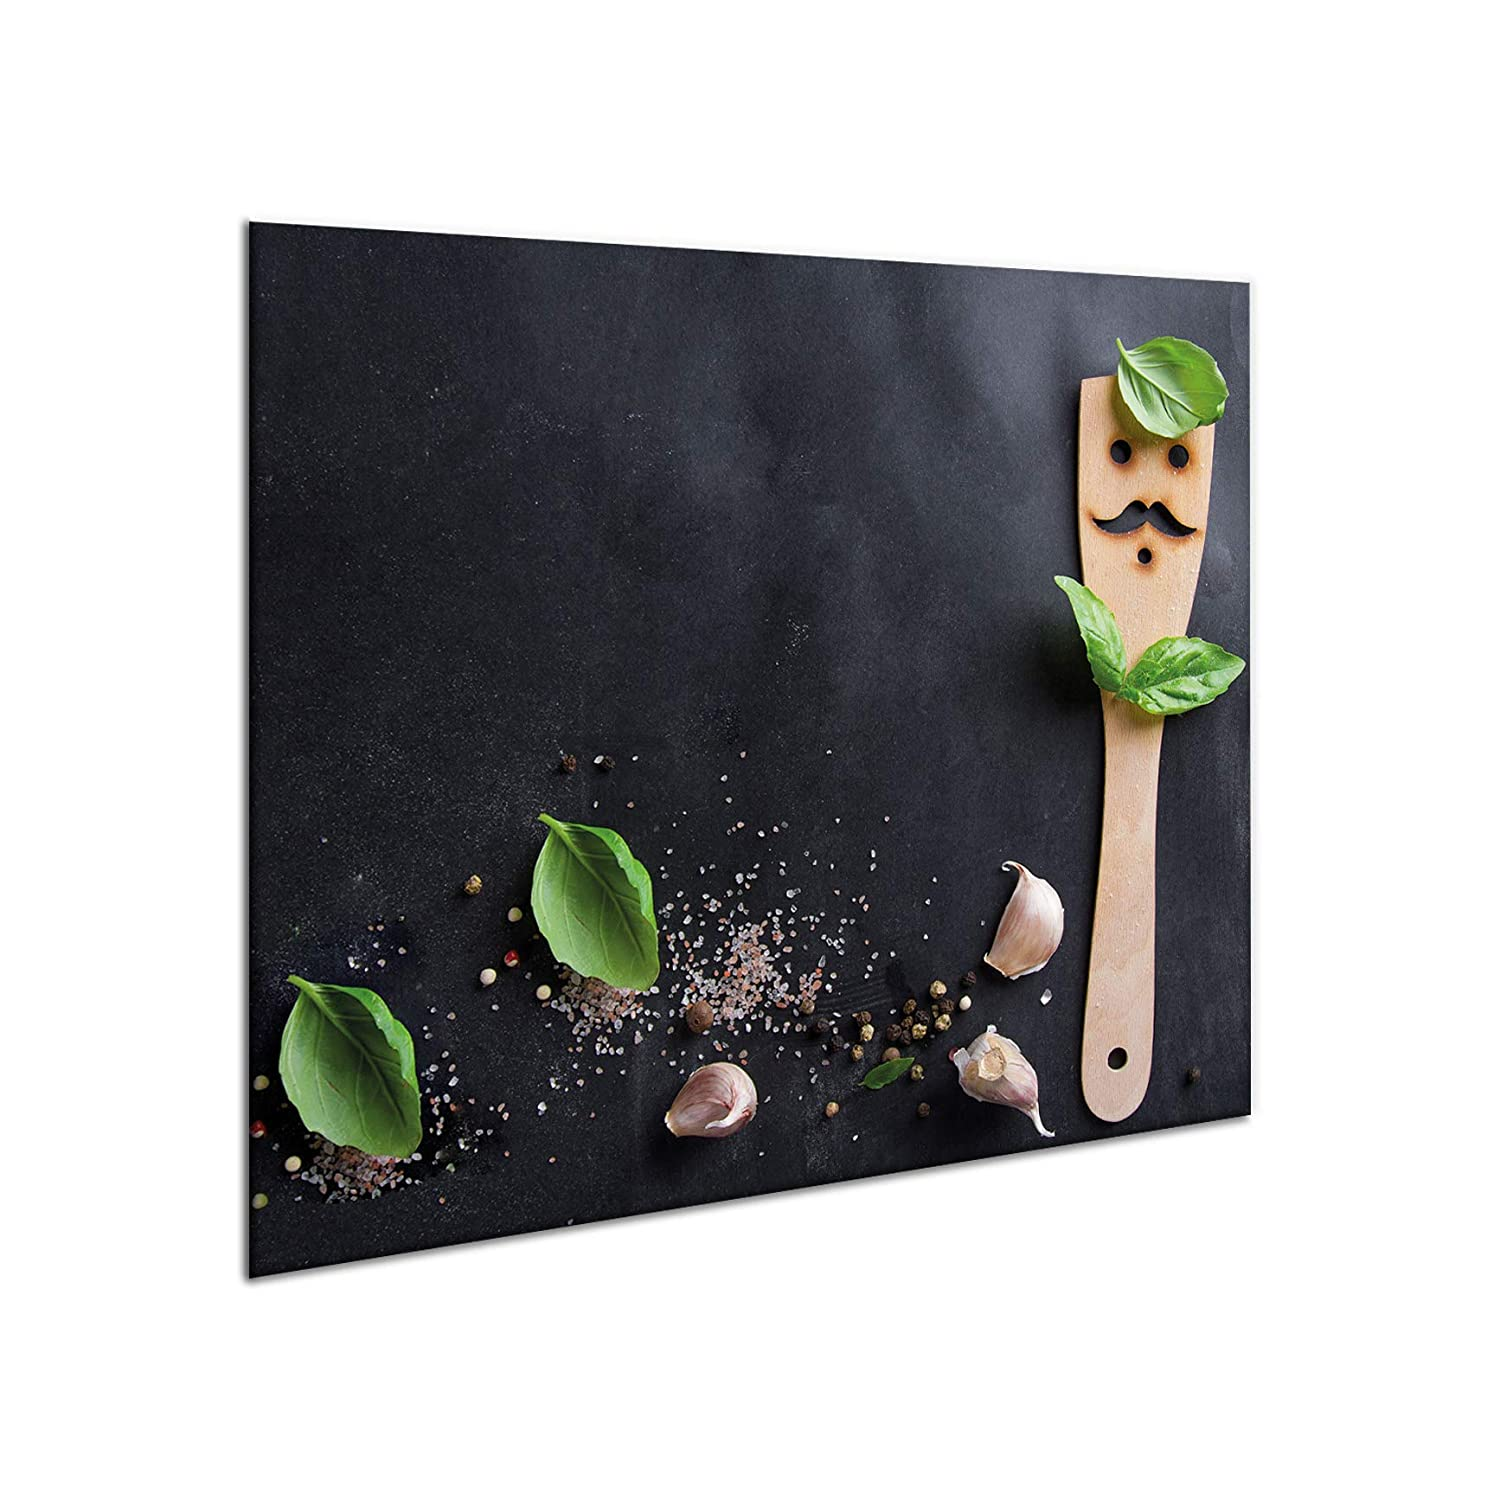 Glass hob protector | Giant chopping board | Splash-back guard | 60cm x 52cm large universal worktop saver for induction electric ceramic halogen cookers | Hardened glass multi-use panel | Stove protector plate | Heat resistant & durable | 10834 grey